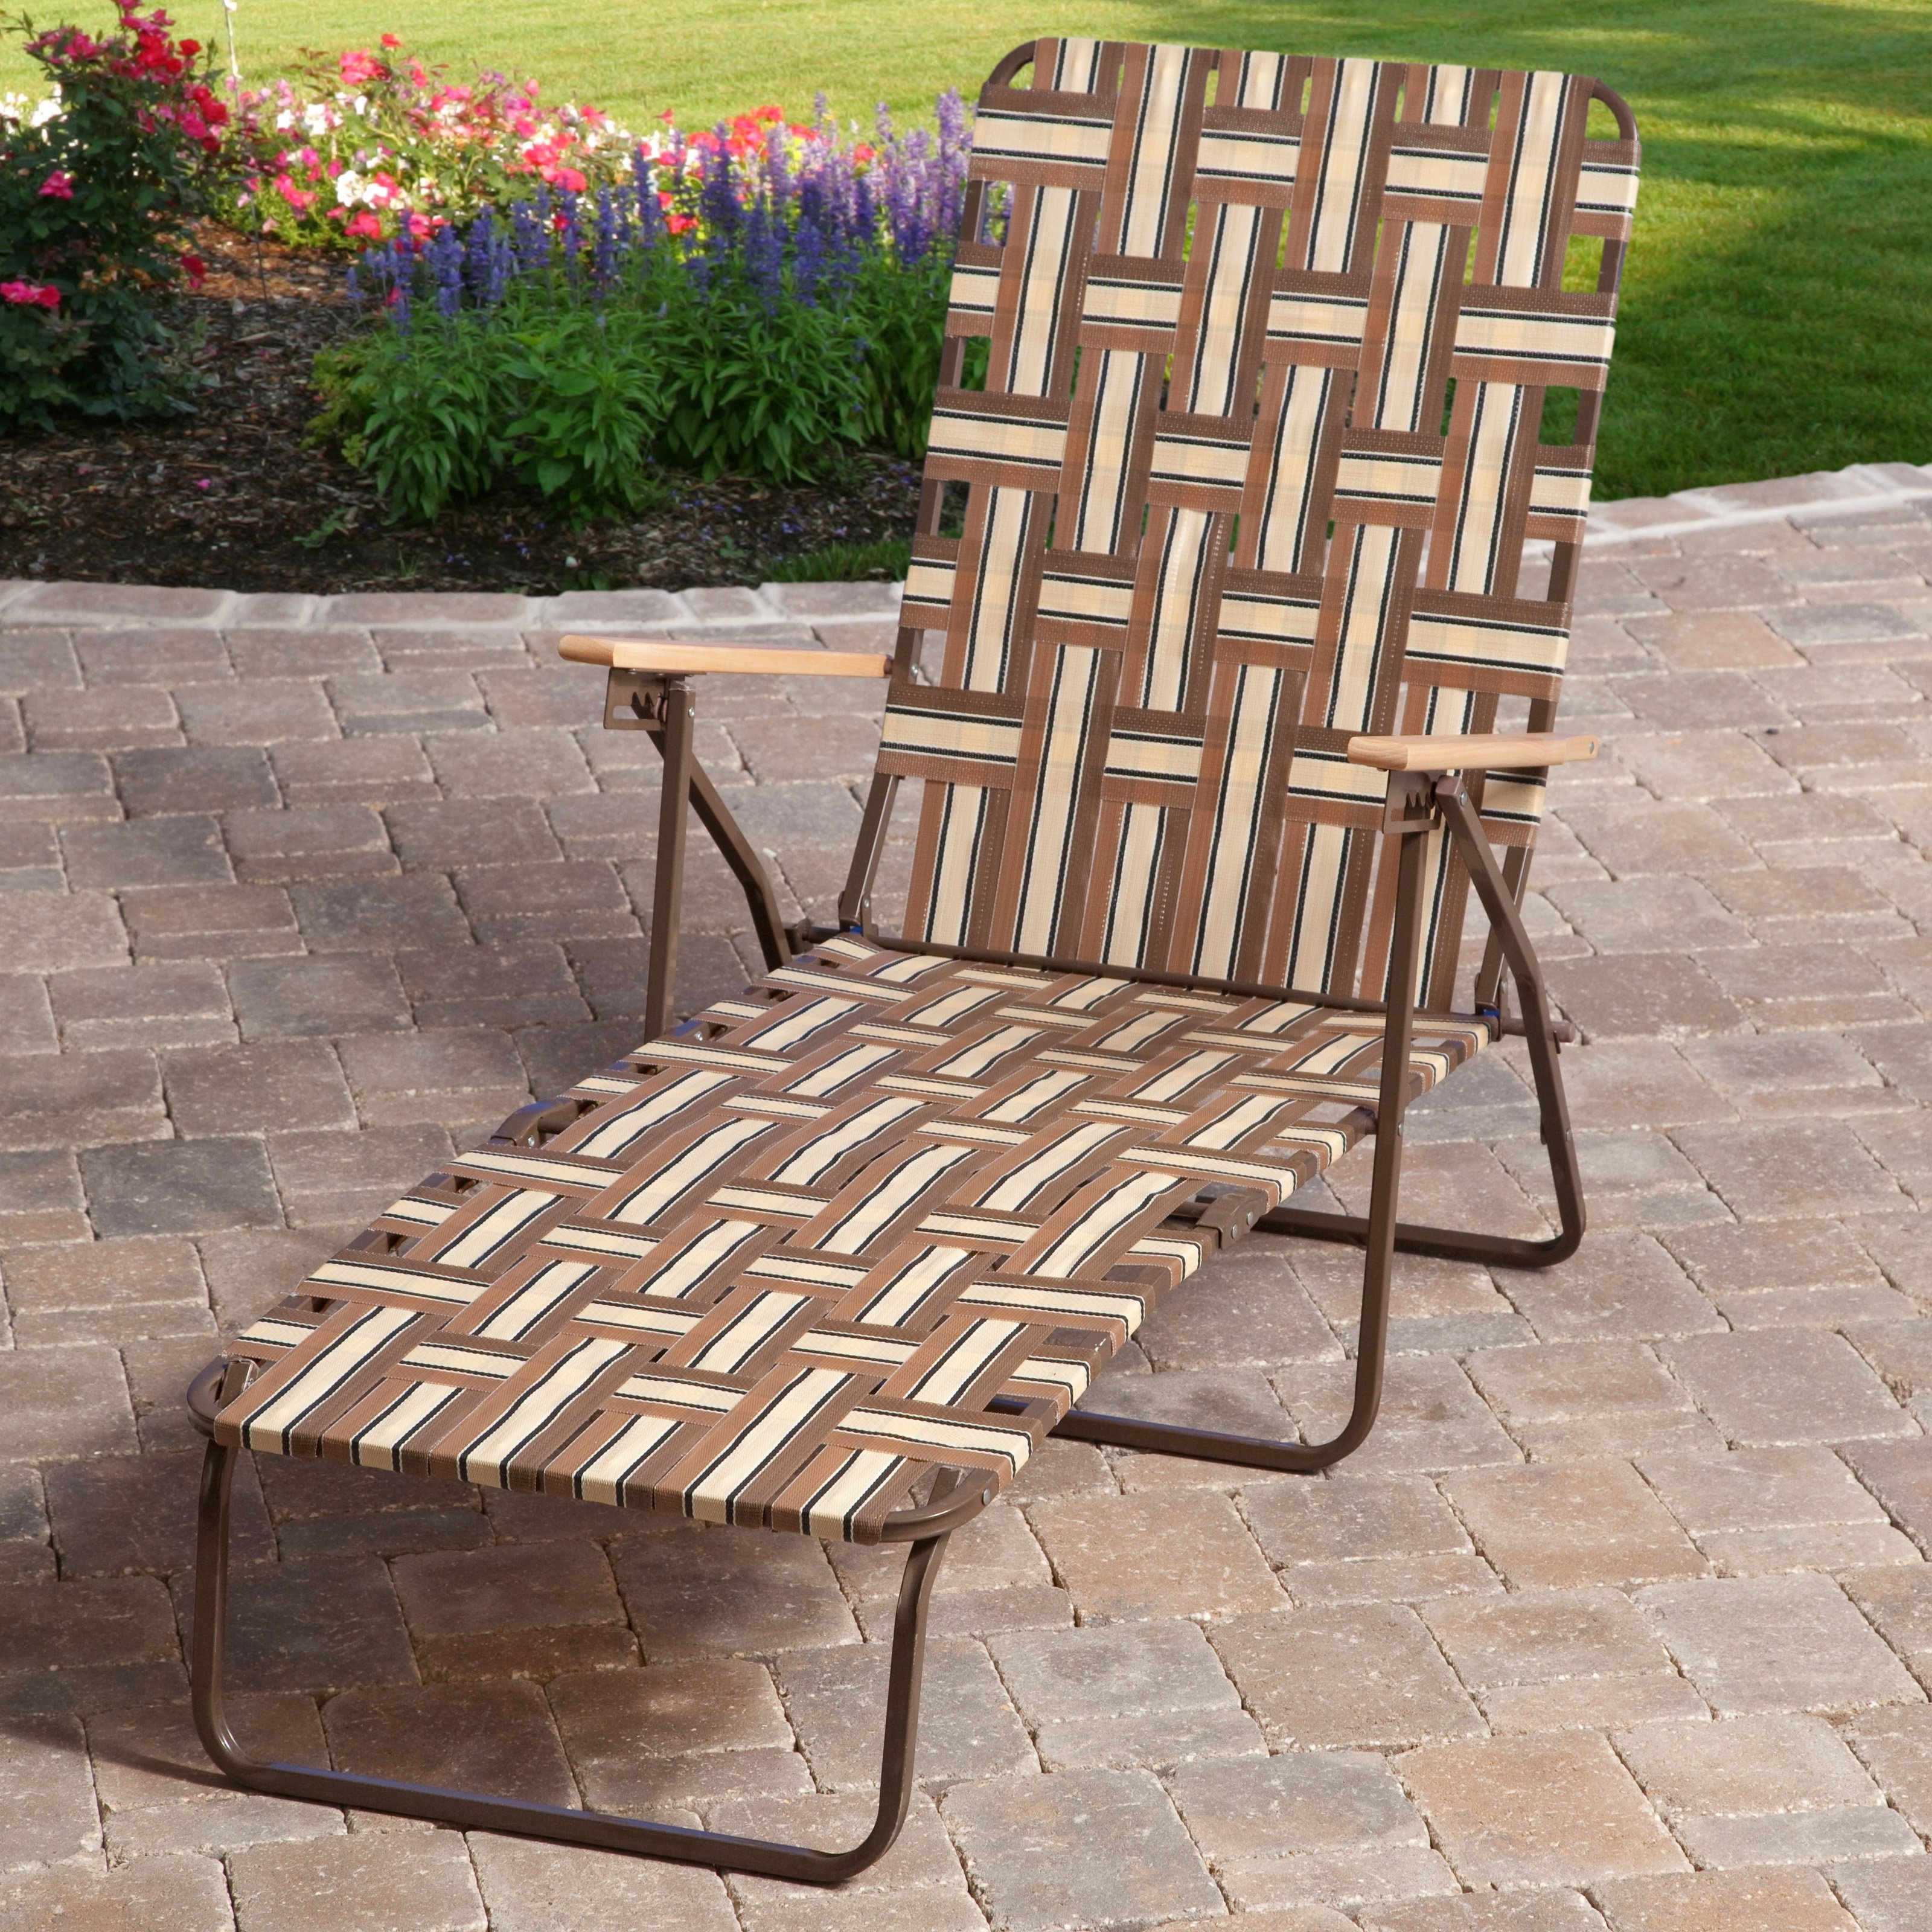 Outdoor Folding Chaise Lounges Regarding Well Known Rio Deluxe Folding Web Chaise Lounge – Walmart (View 14 of 15)